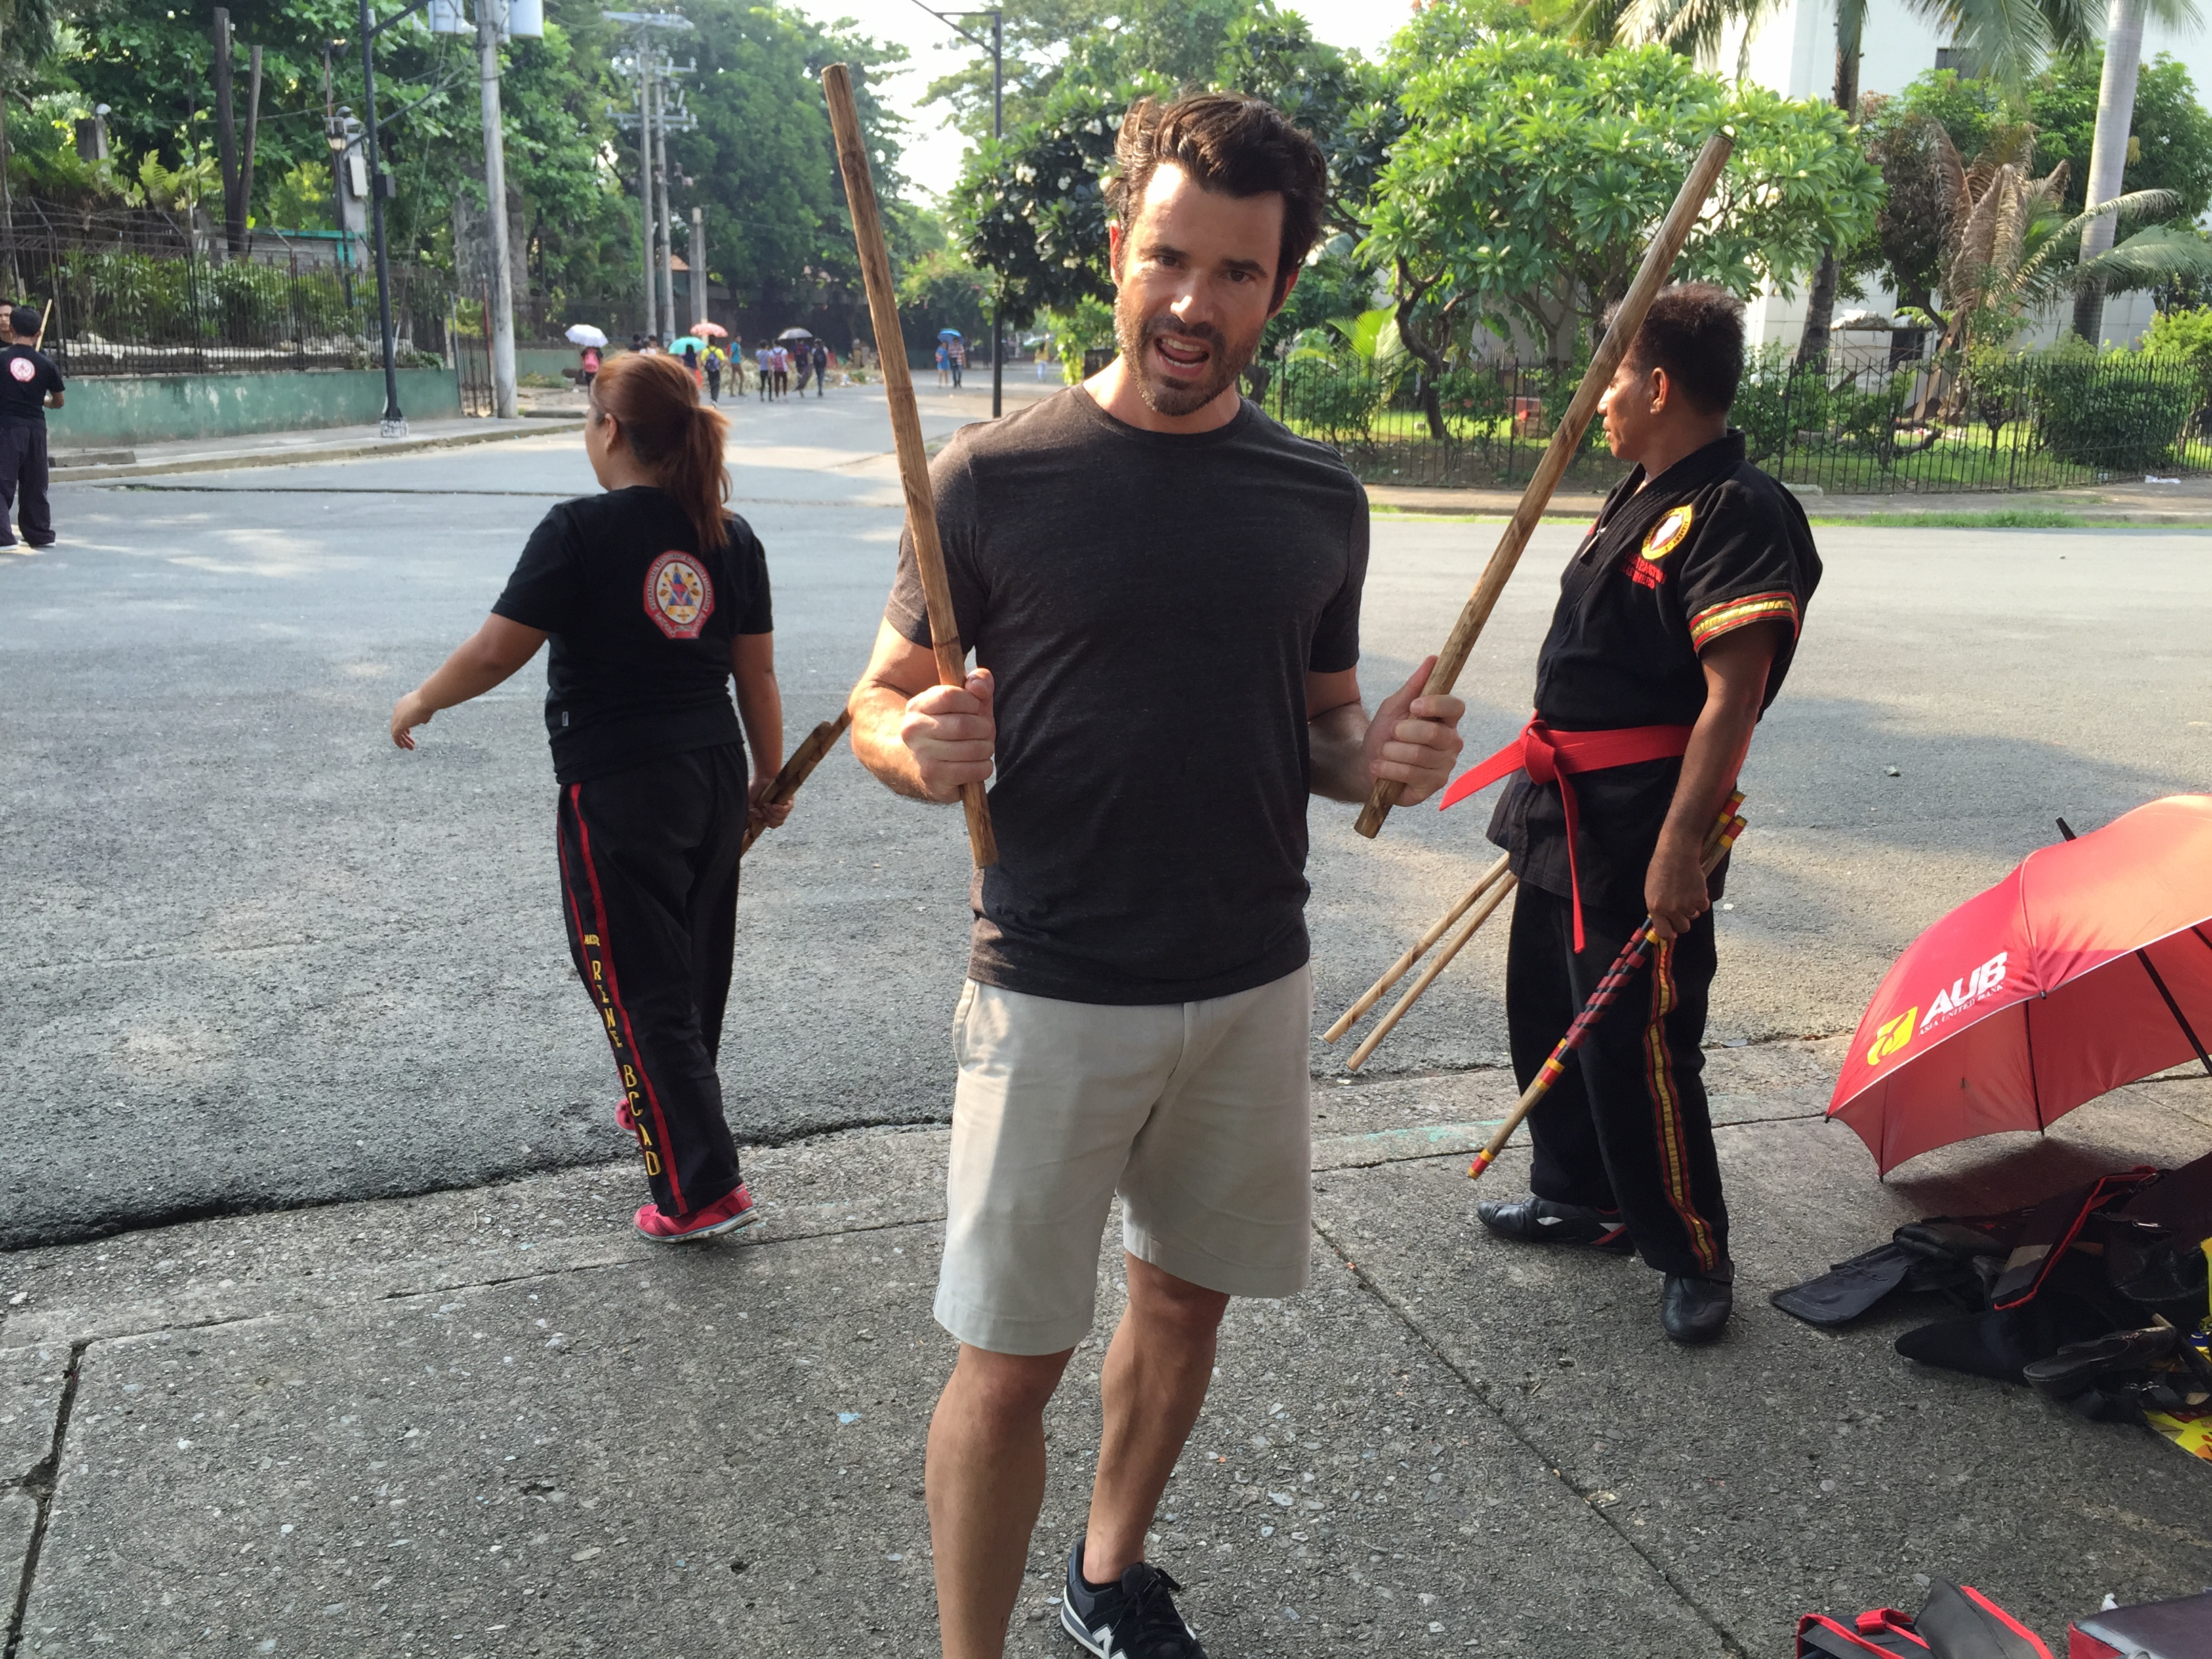 This is a fascinating and truly Filipino activity - Arnis! Antonio tried arnis in Luneta.